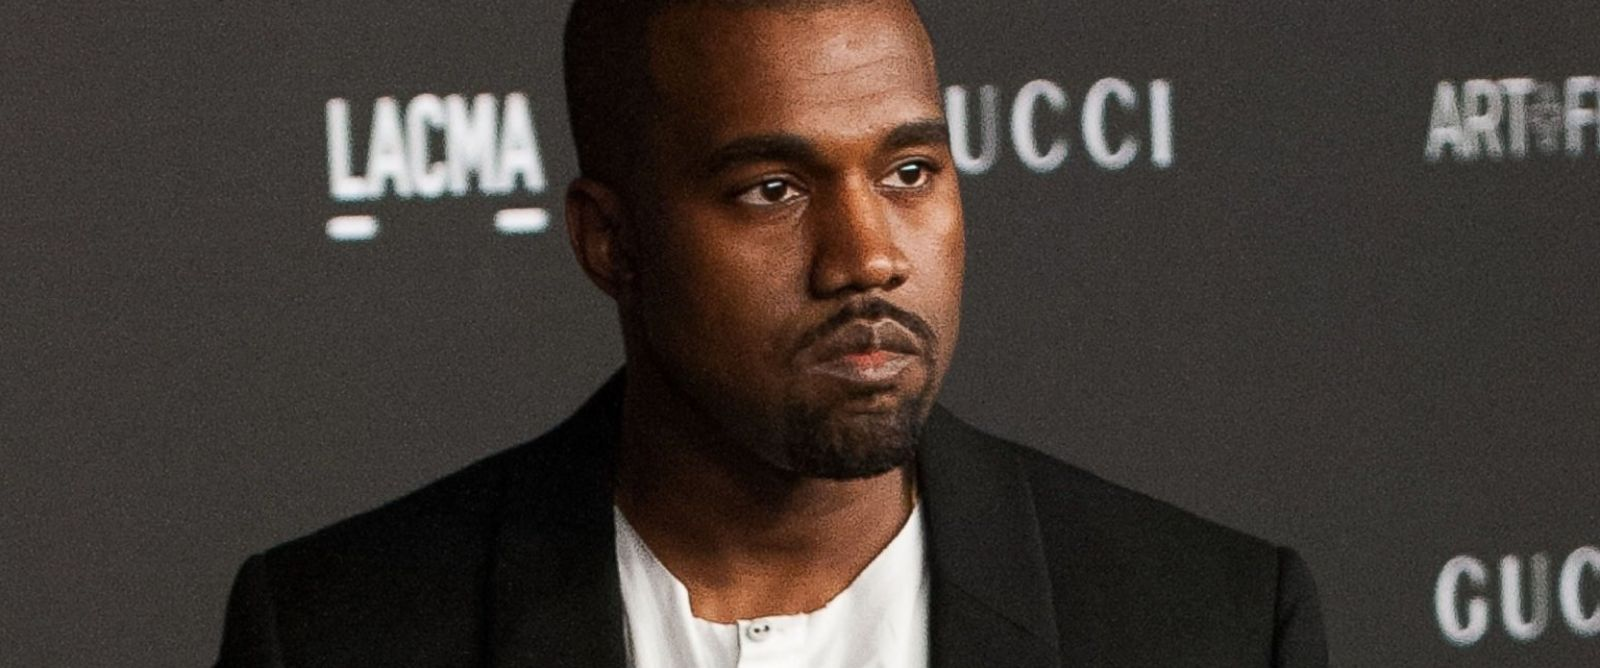 PHOTO: Recording artist Kanye West arrives for the 2014 LACMA Art + Film Gala in Los Angeles on Nov. 1, 2014.